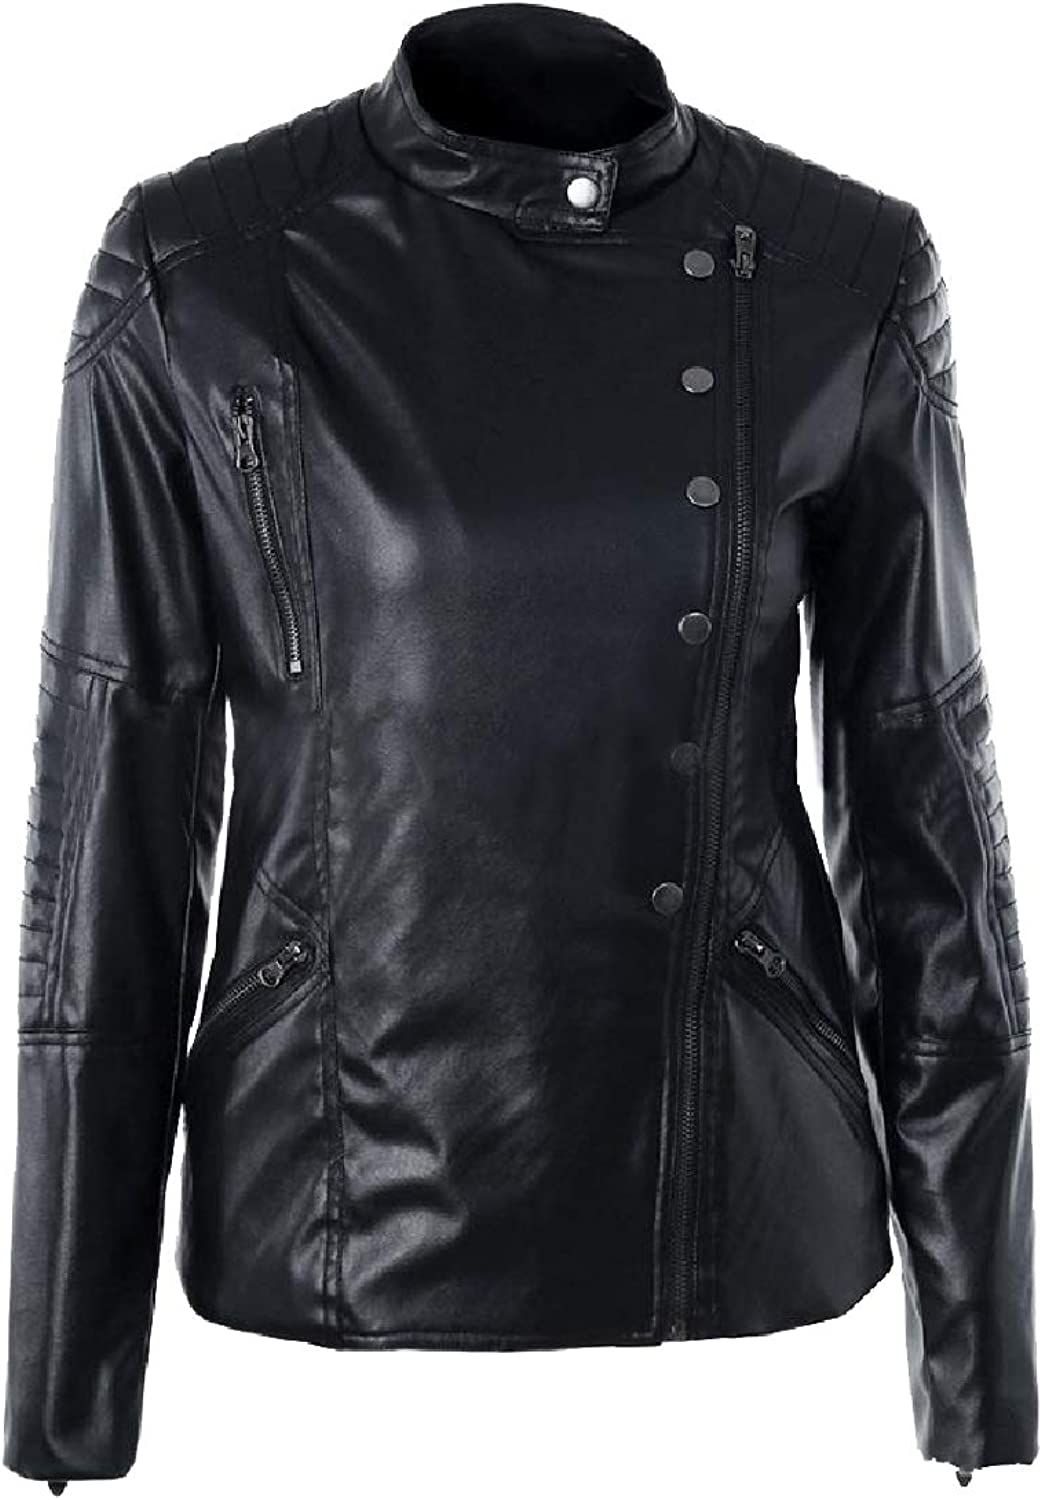 TaoNice Women's Thermal Windproof Ruched Sleeve Pu Leather Jacket